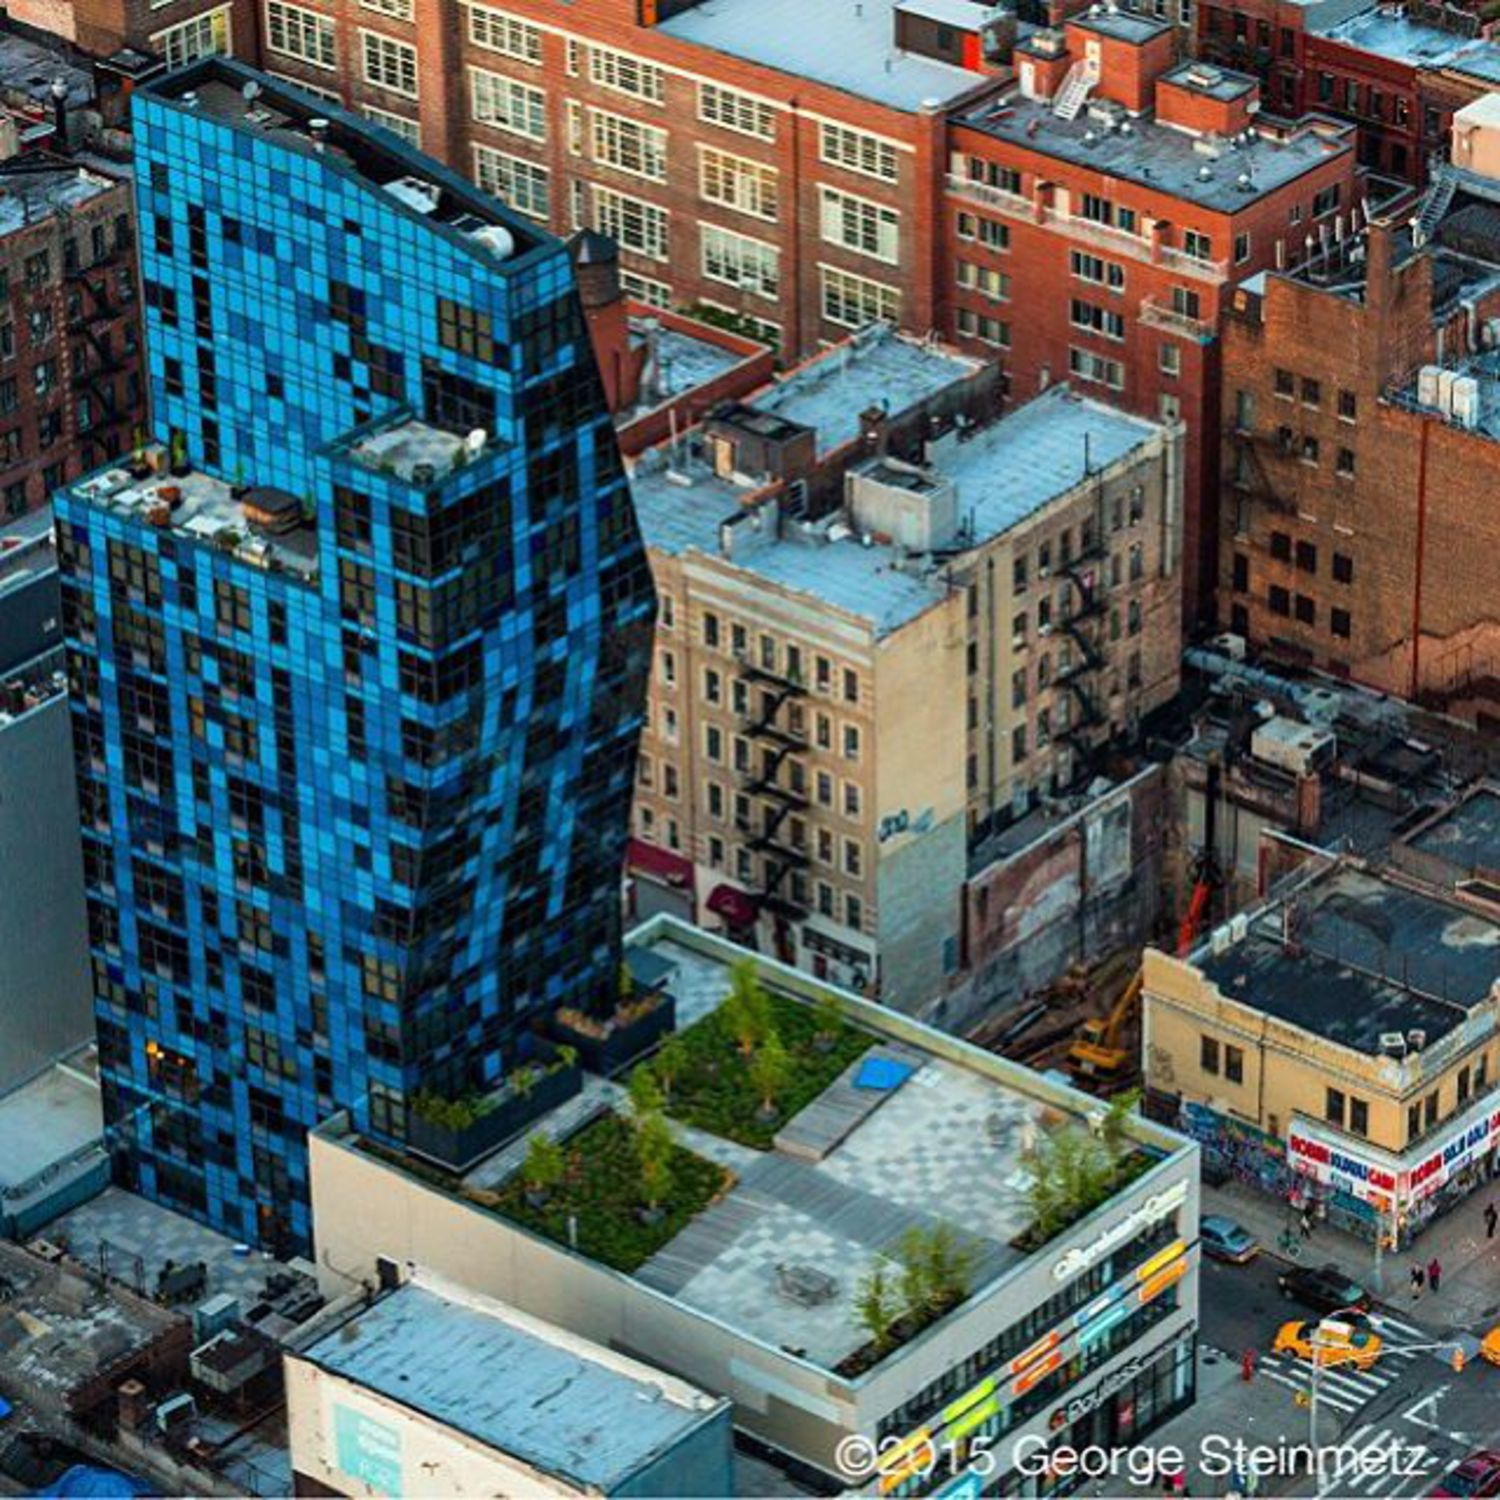 Photograph by George Steinmetz @geosteinmetz / @thephotosociety  Bernard Tschumi's innovative 2007 BLUE residential tower on Manhattan's Lower East Side uses angled walls and roof to allow for maximum floor space on the upper floors. BLUE introduced a new element to a neighborhood whose every-day character is expressed by the storefronts along Delancey Street.